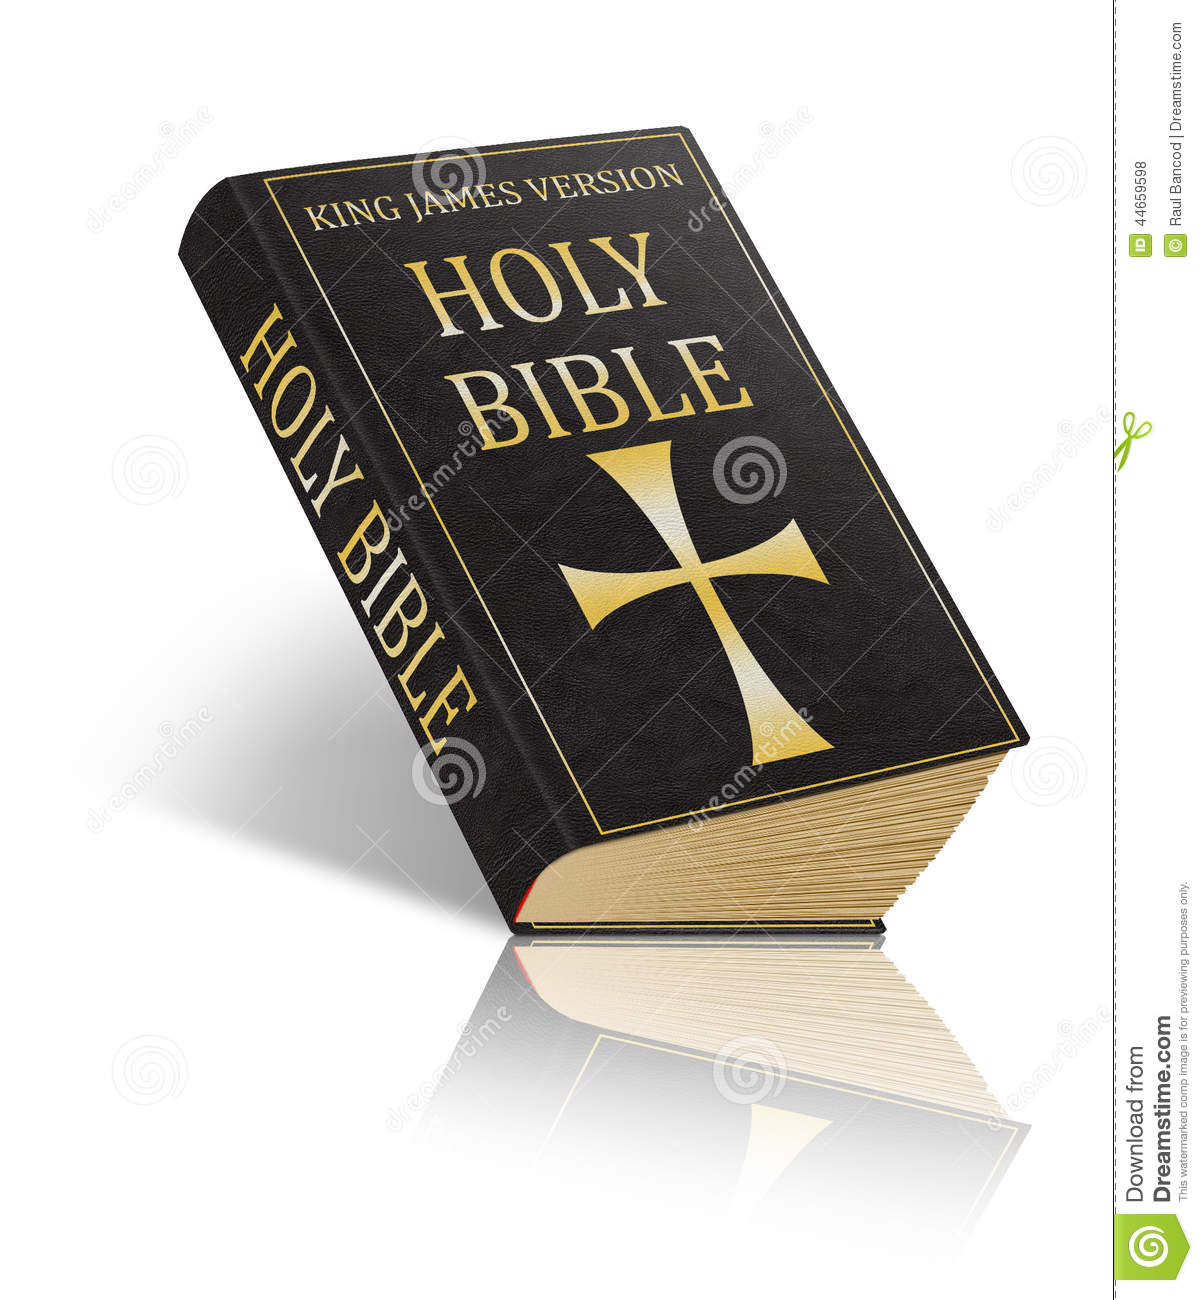 The Holy Bible - King James Version Stock Photo - Illustration of